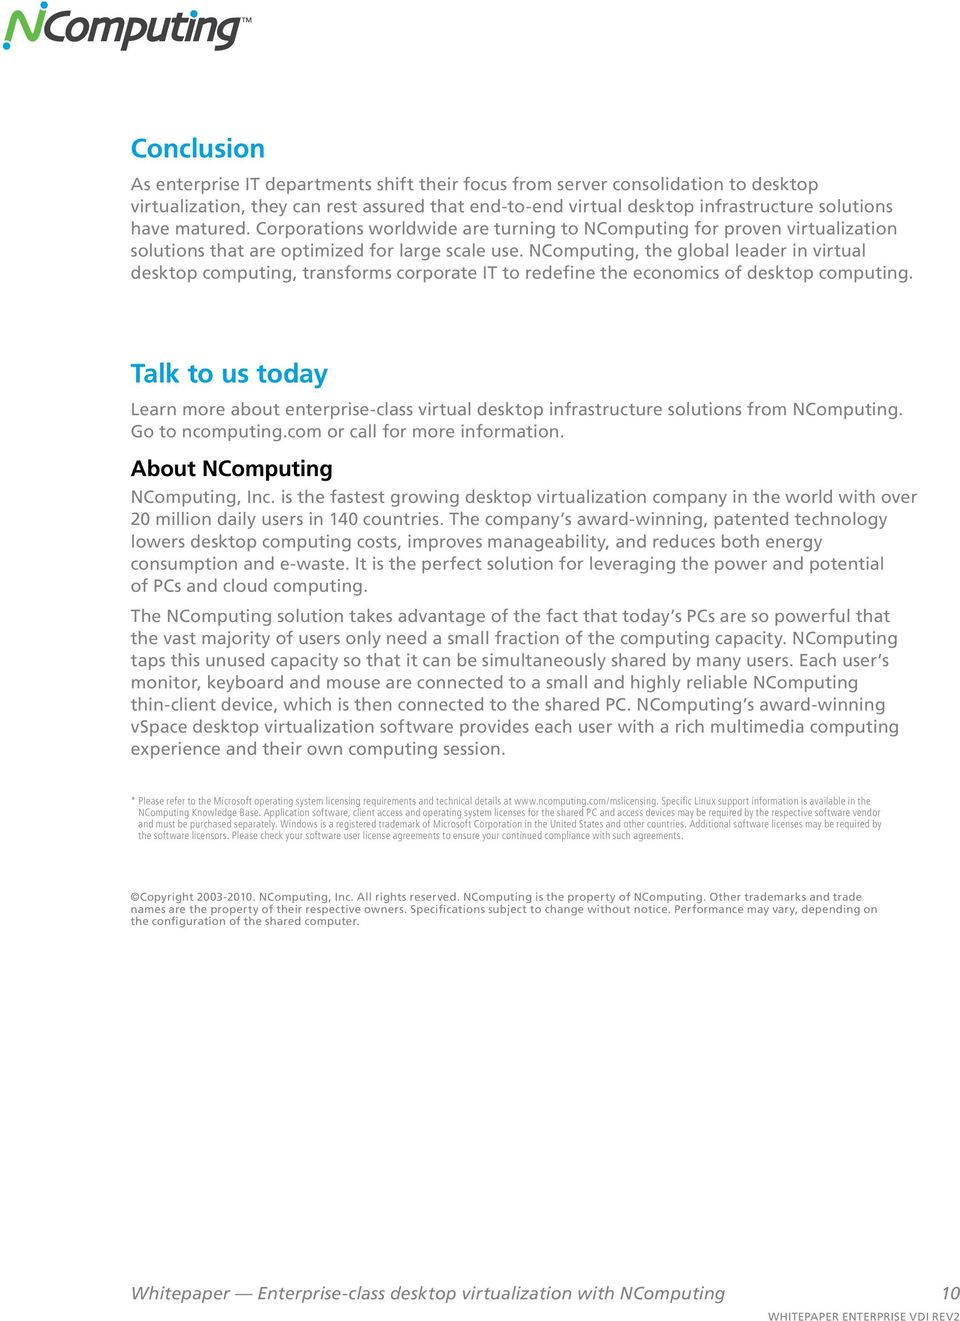 NComputing, the global leader in virtual desktop computing, transforms corporate IT to redefine the economics of desktop computing.